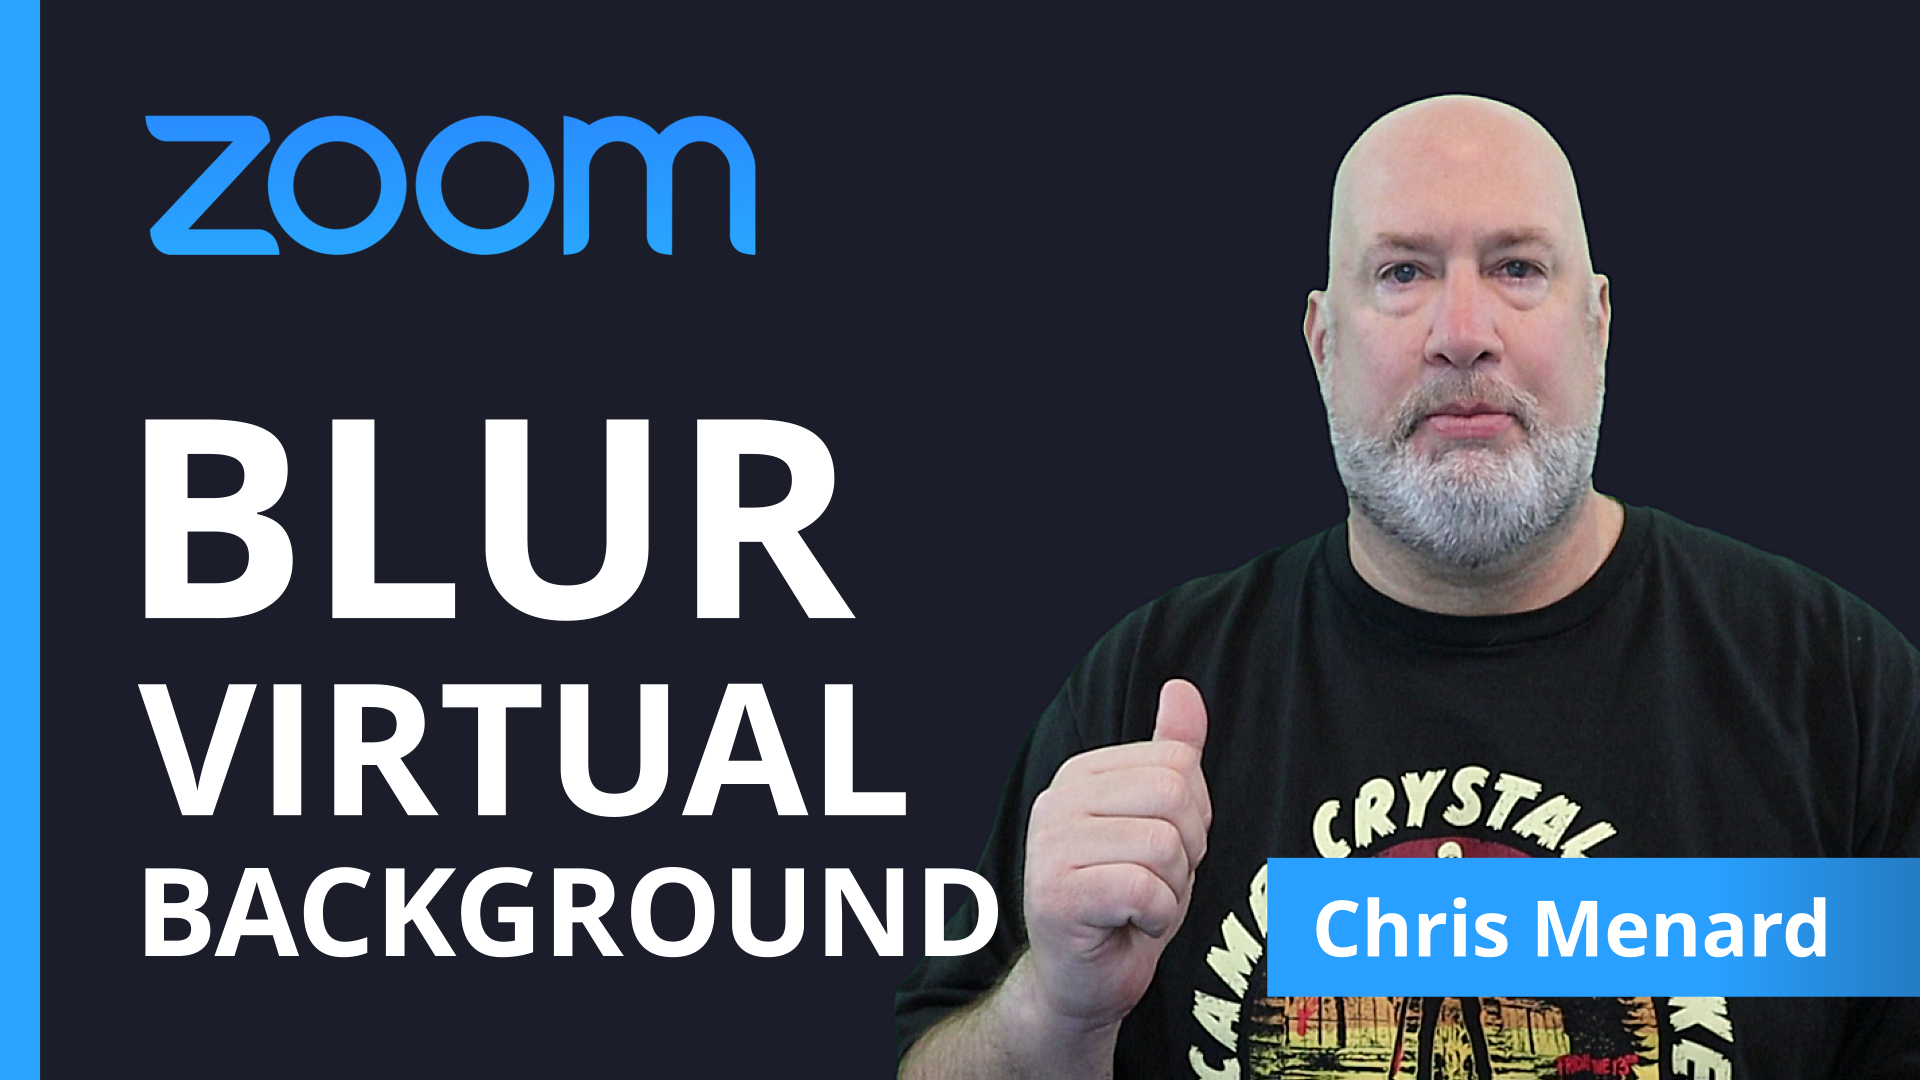 Zoom - Blur your background - virtual background - New Feature